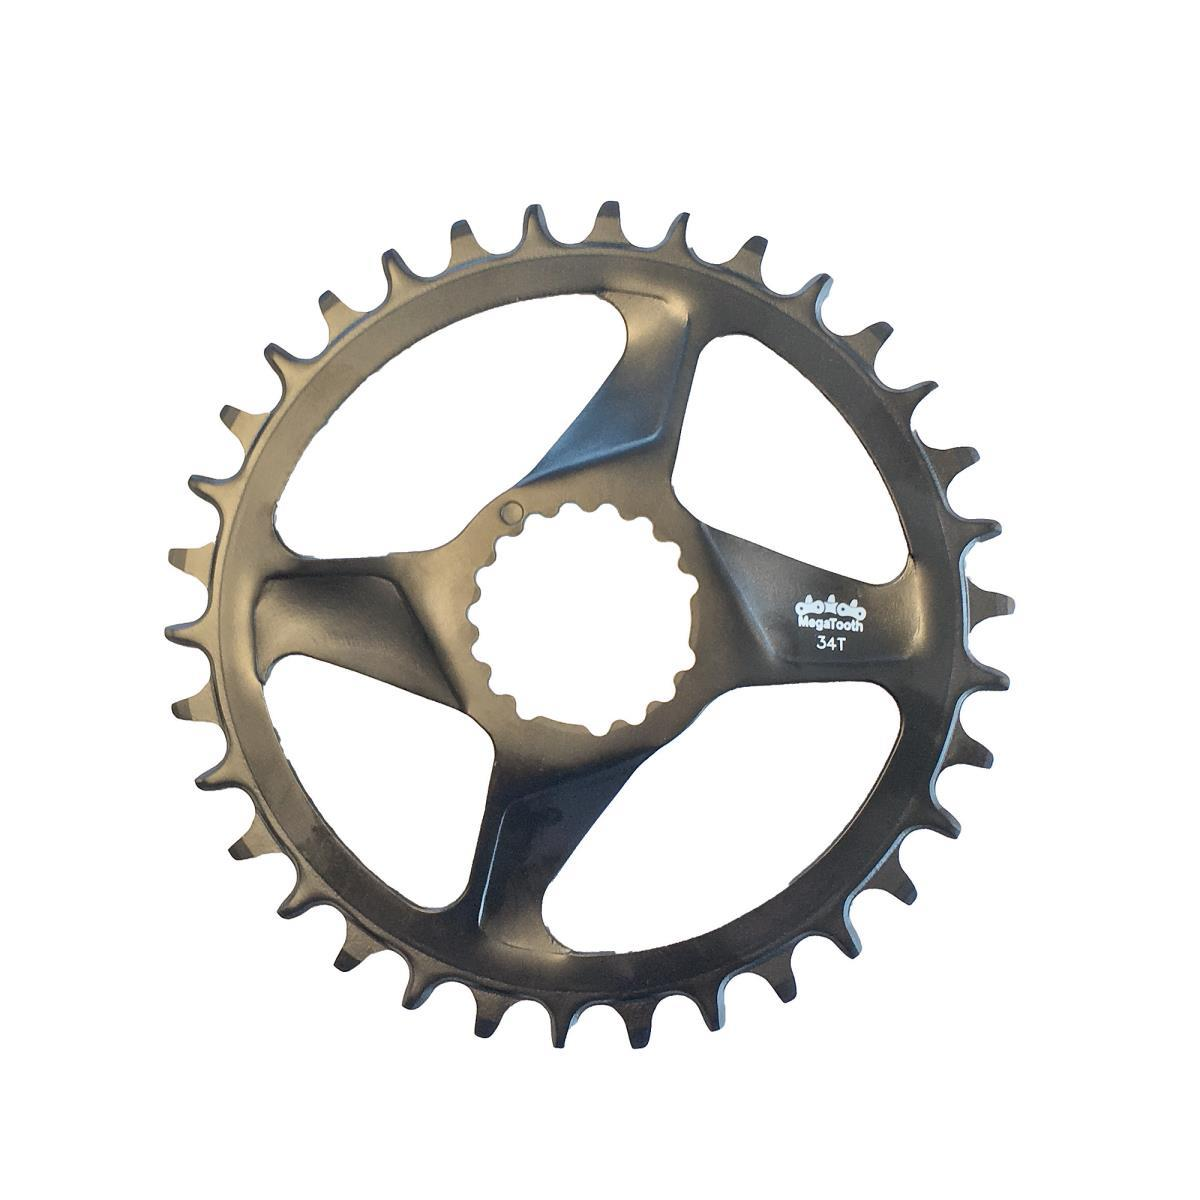 FSA Afterburner Chainring Direct-Mount Megatooth 11-Speed 28t